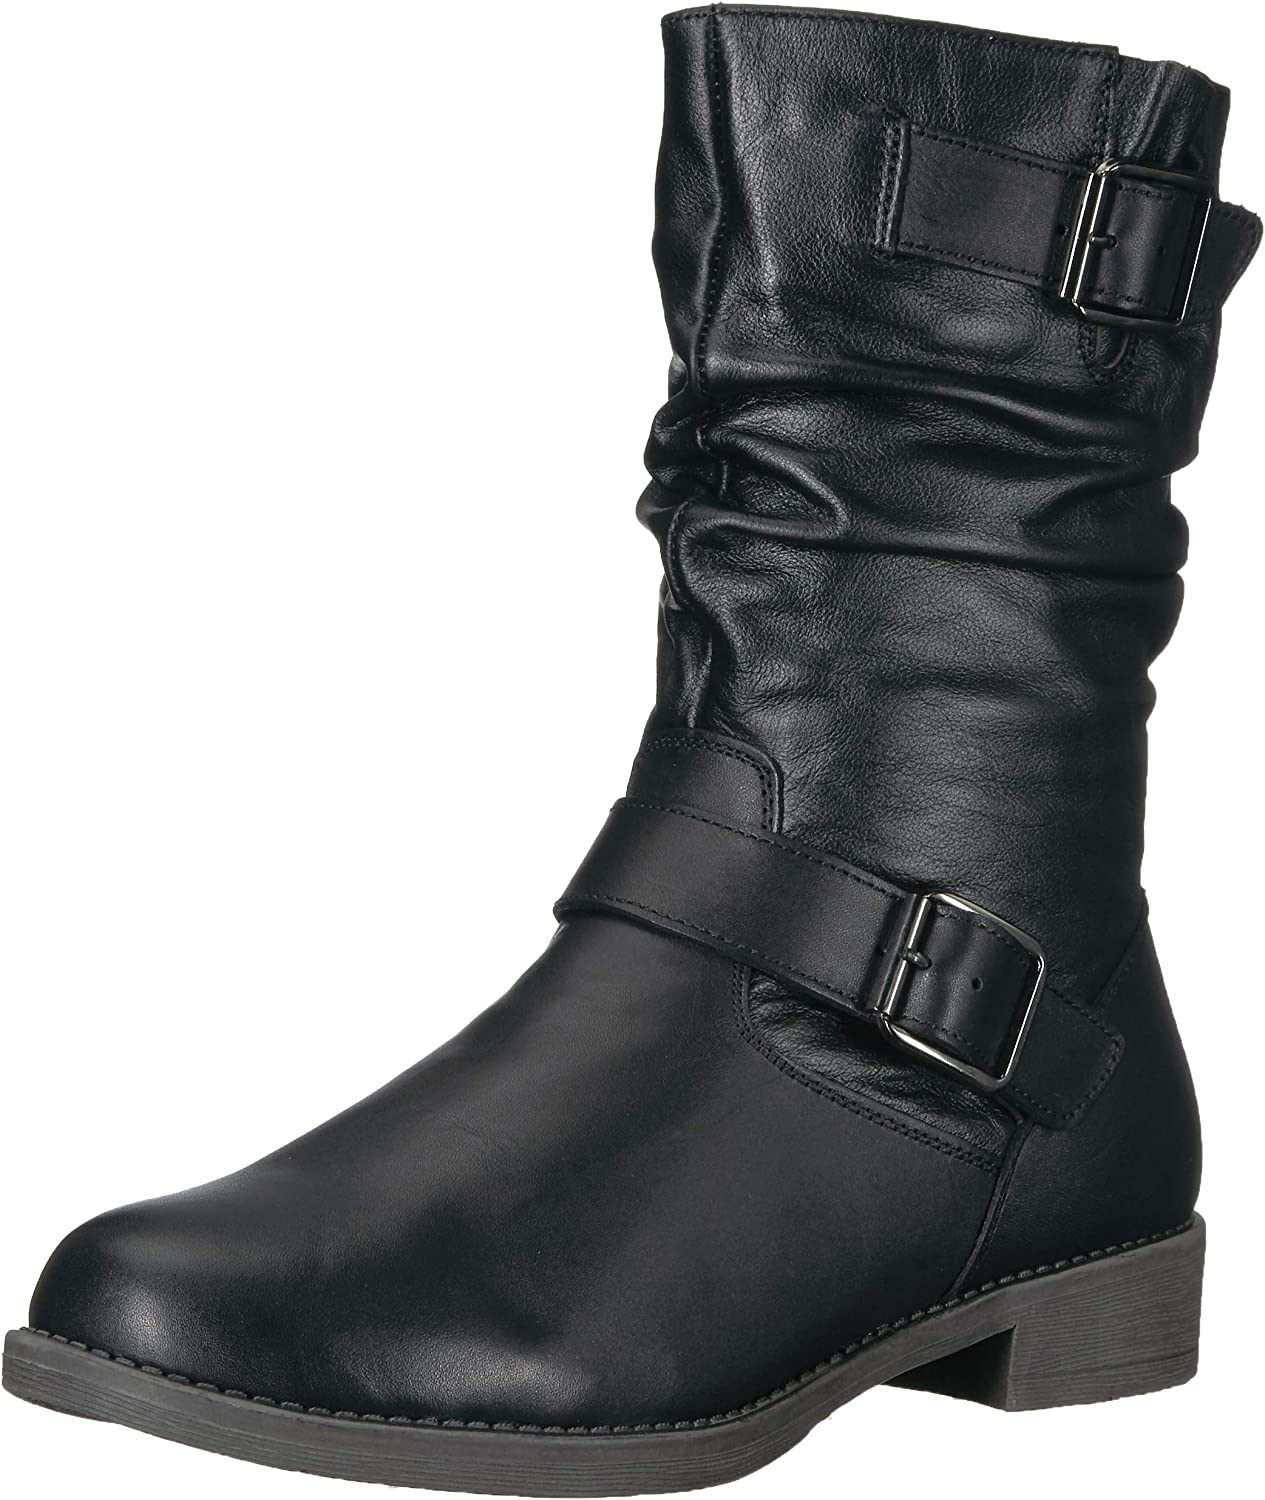 Propet Women's Tatum Slouch Mid Calf Boot, Black, 11 Wide Wide US